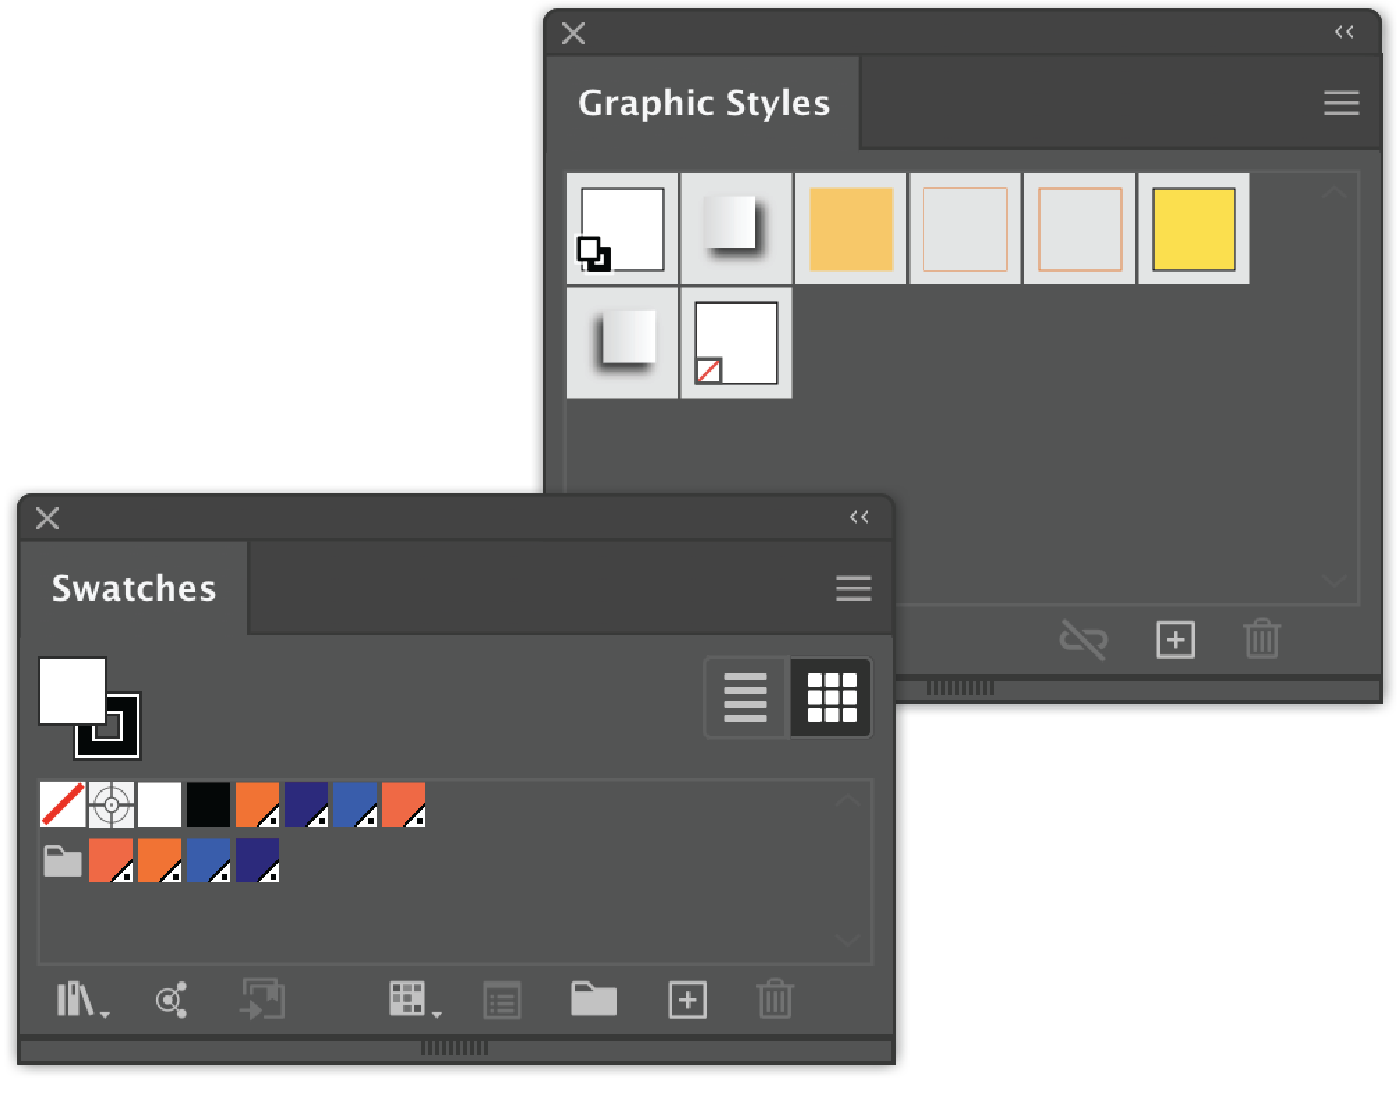 Graphic Styles and Swatches saved as Templates